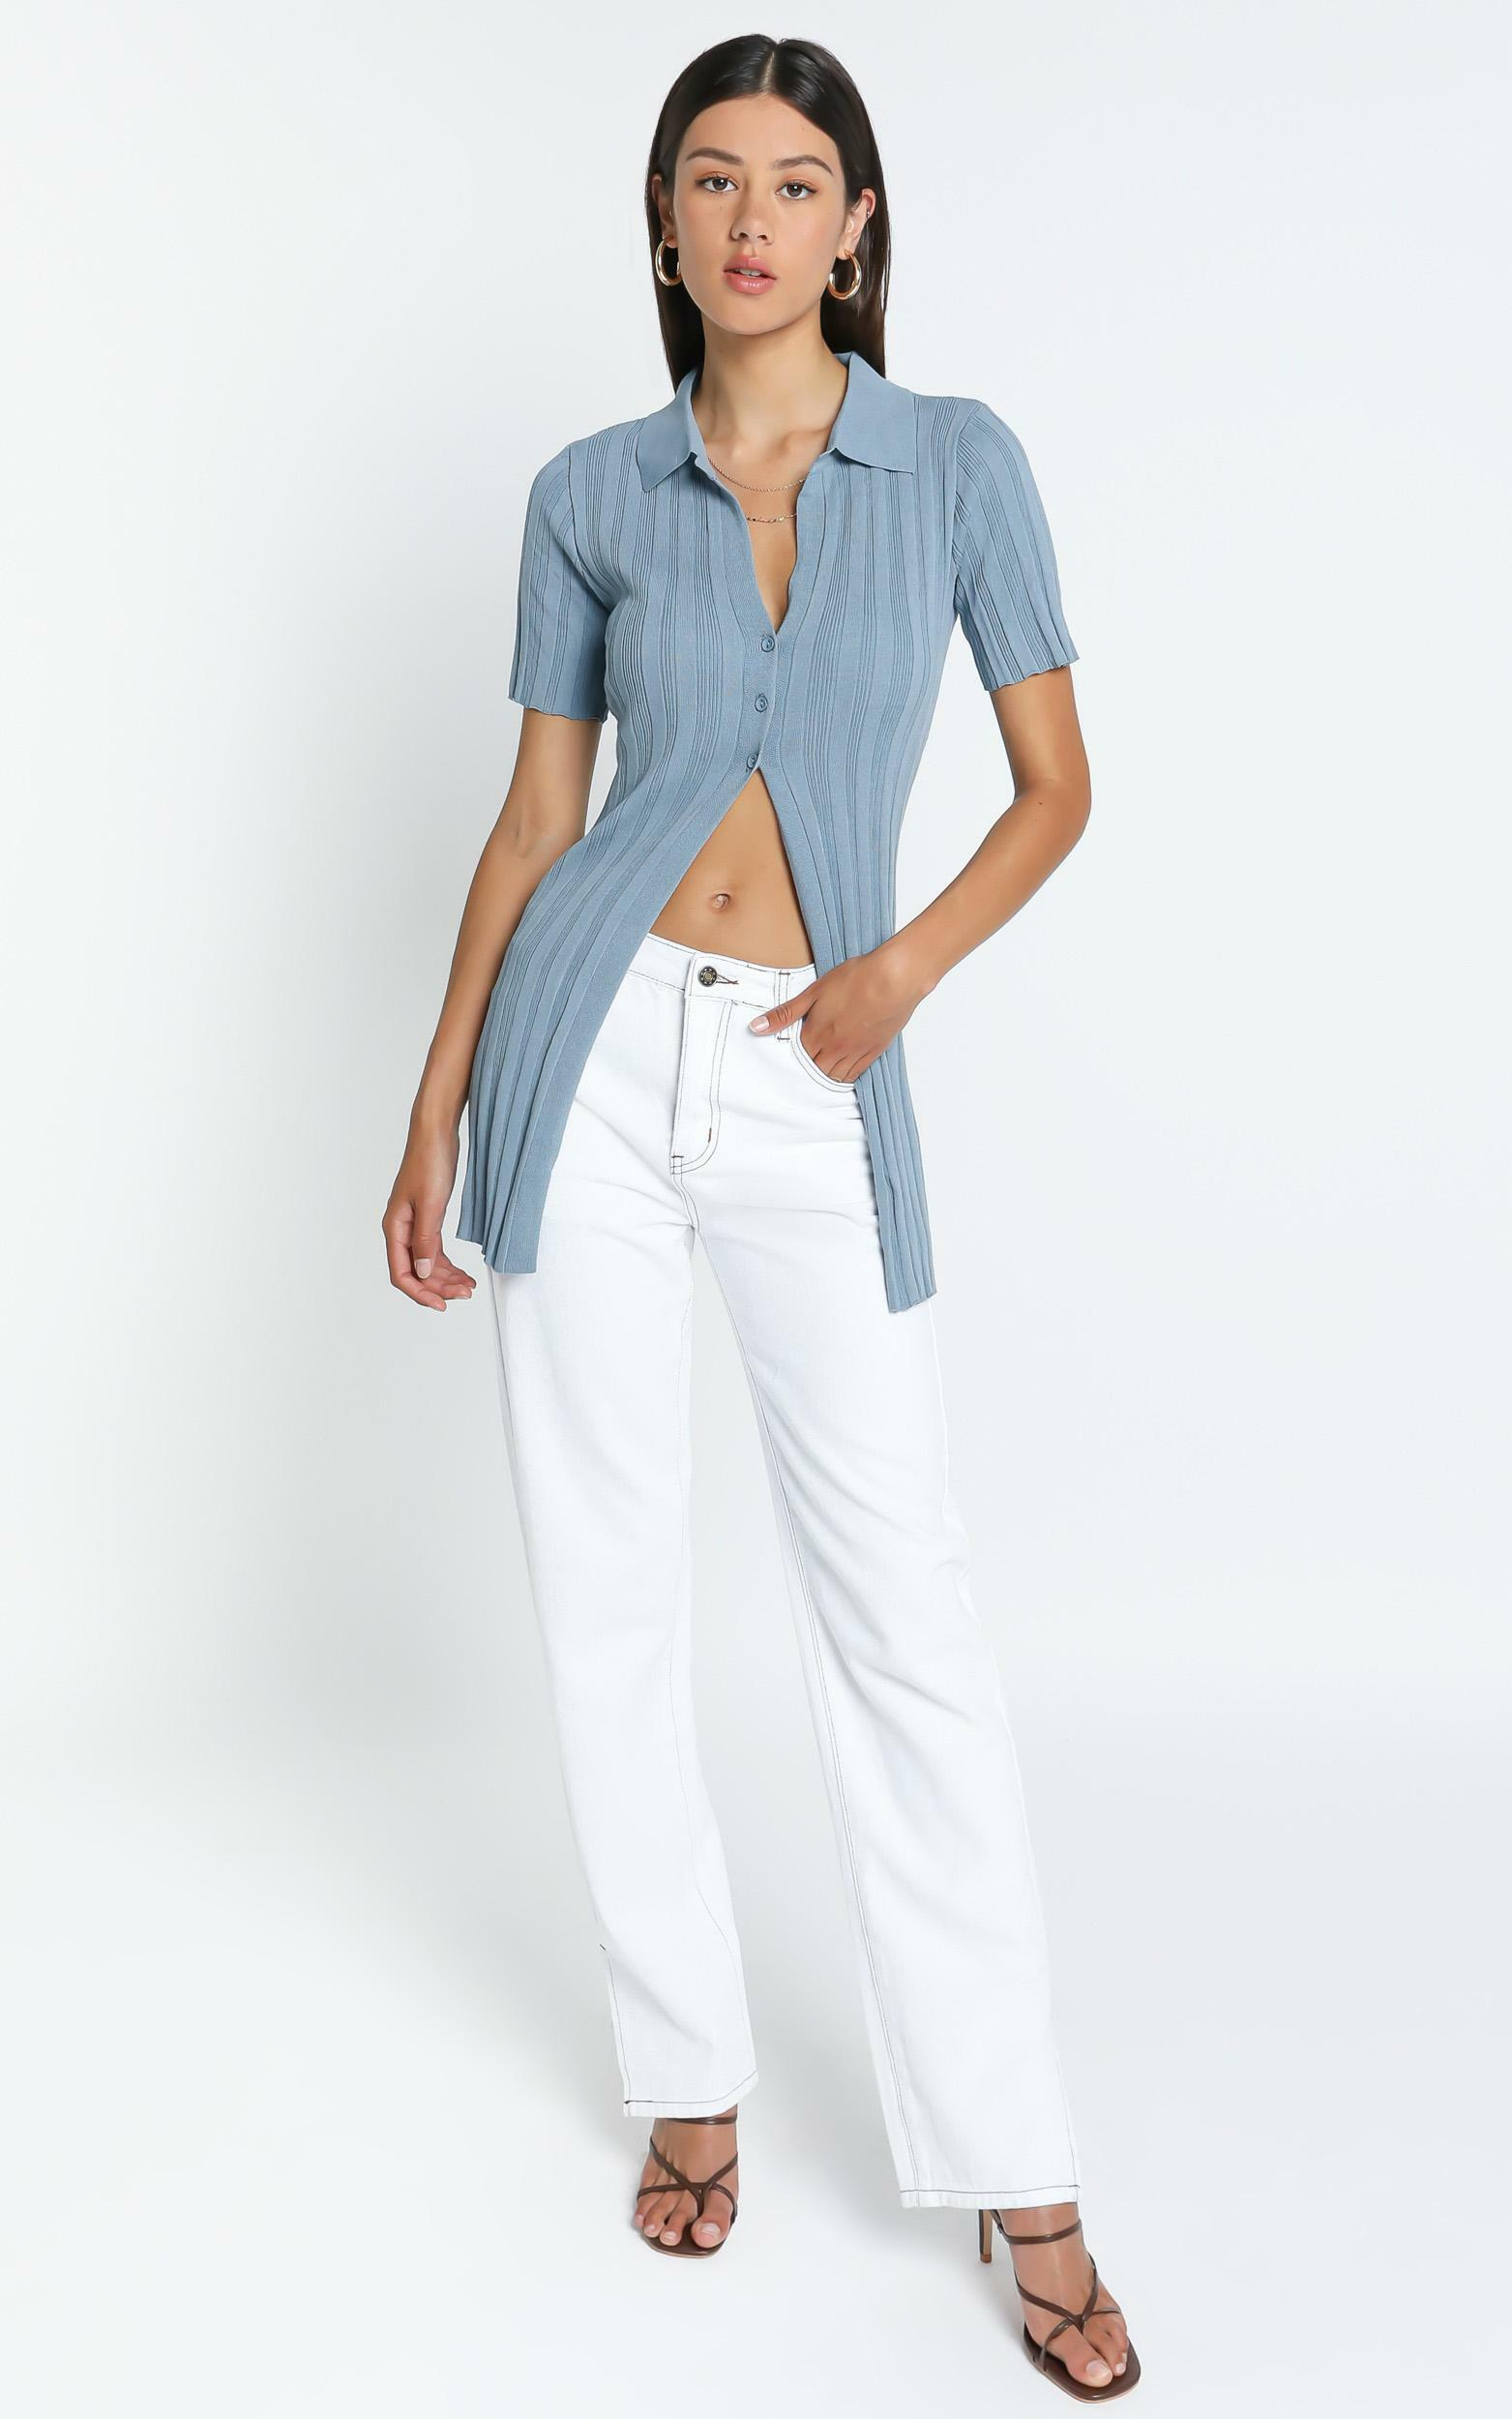 Lioness - Silverlake Cardi Top in Dusty Blue - 04, BLU1, hi-res image number null